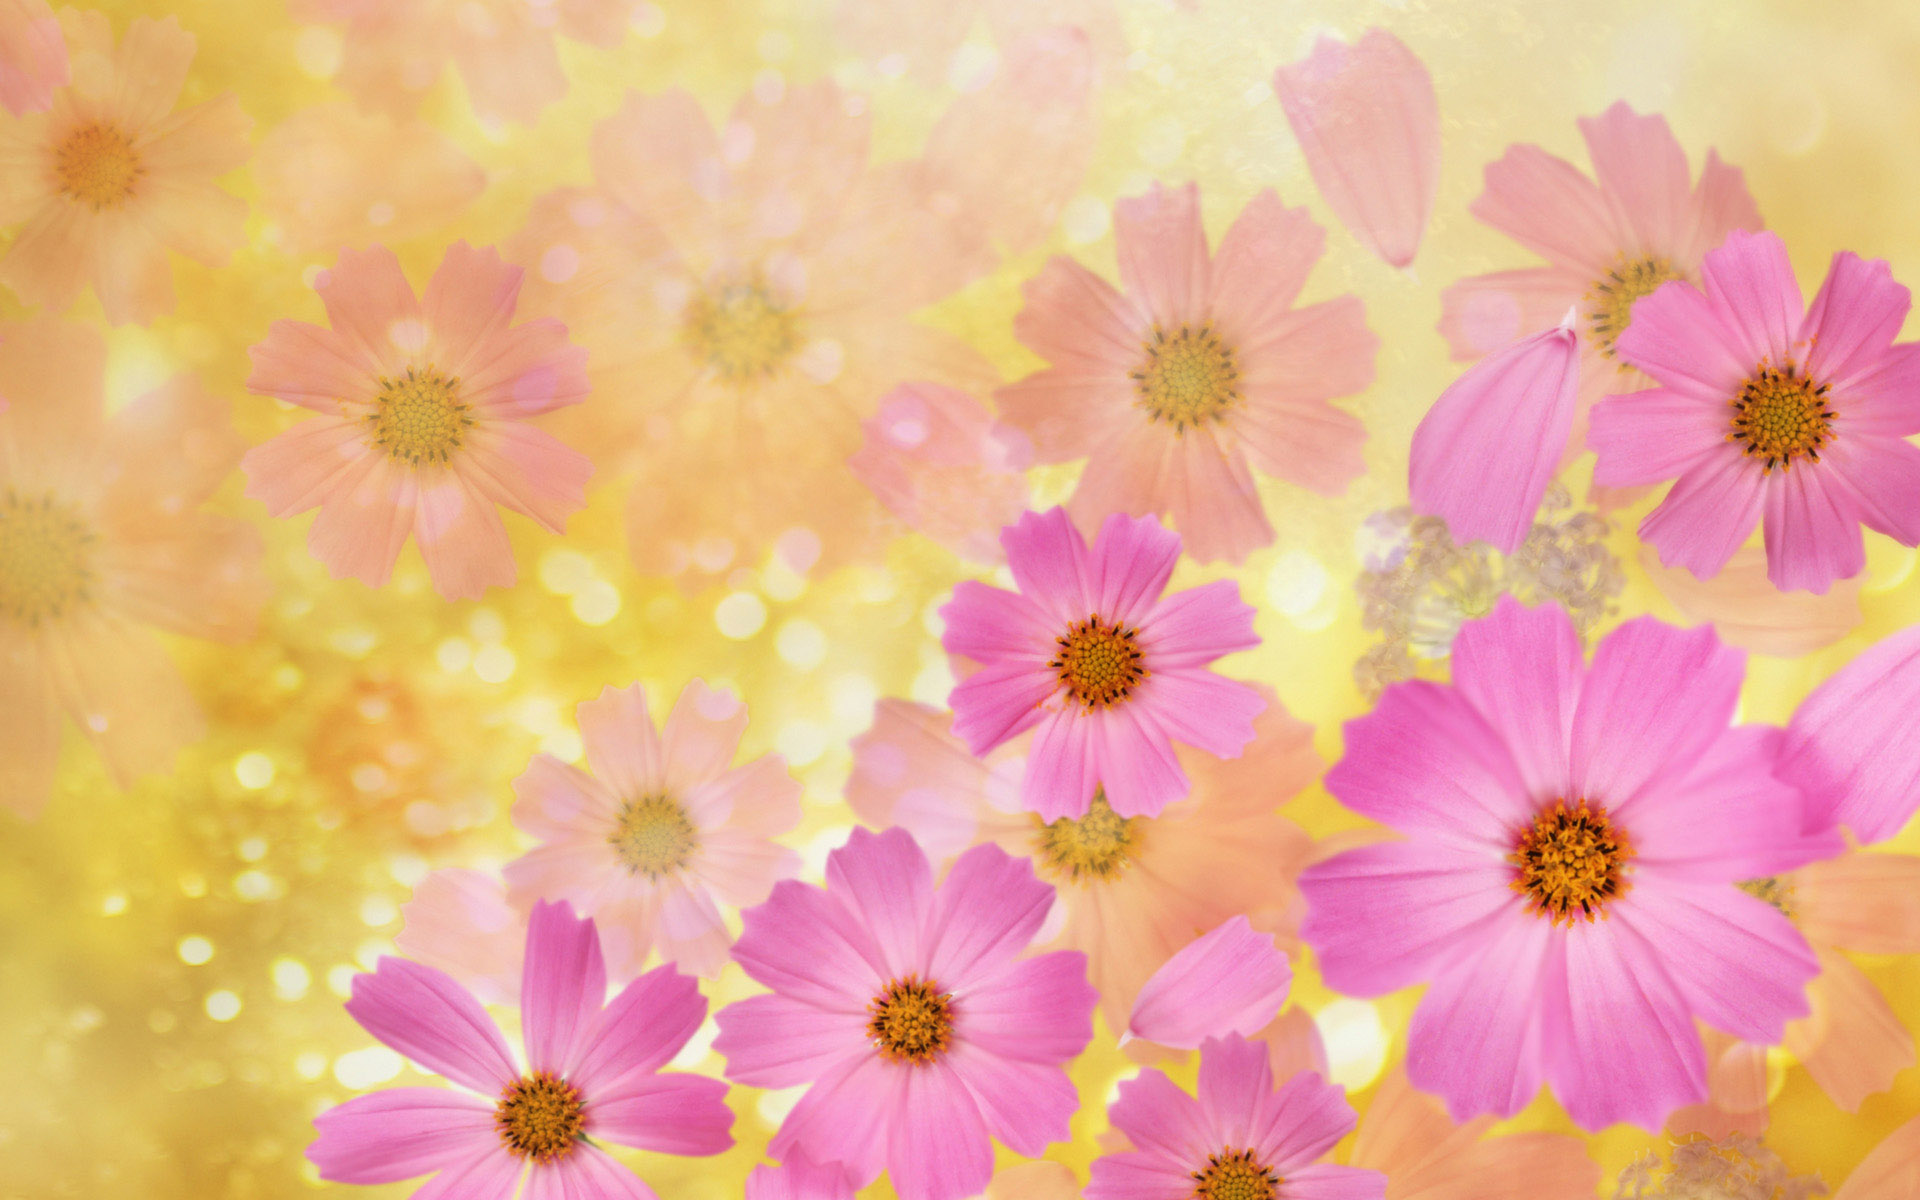 flowers Wallpaper and make this wallpaper for your desktop tablet 1920x1200